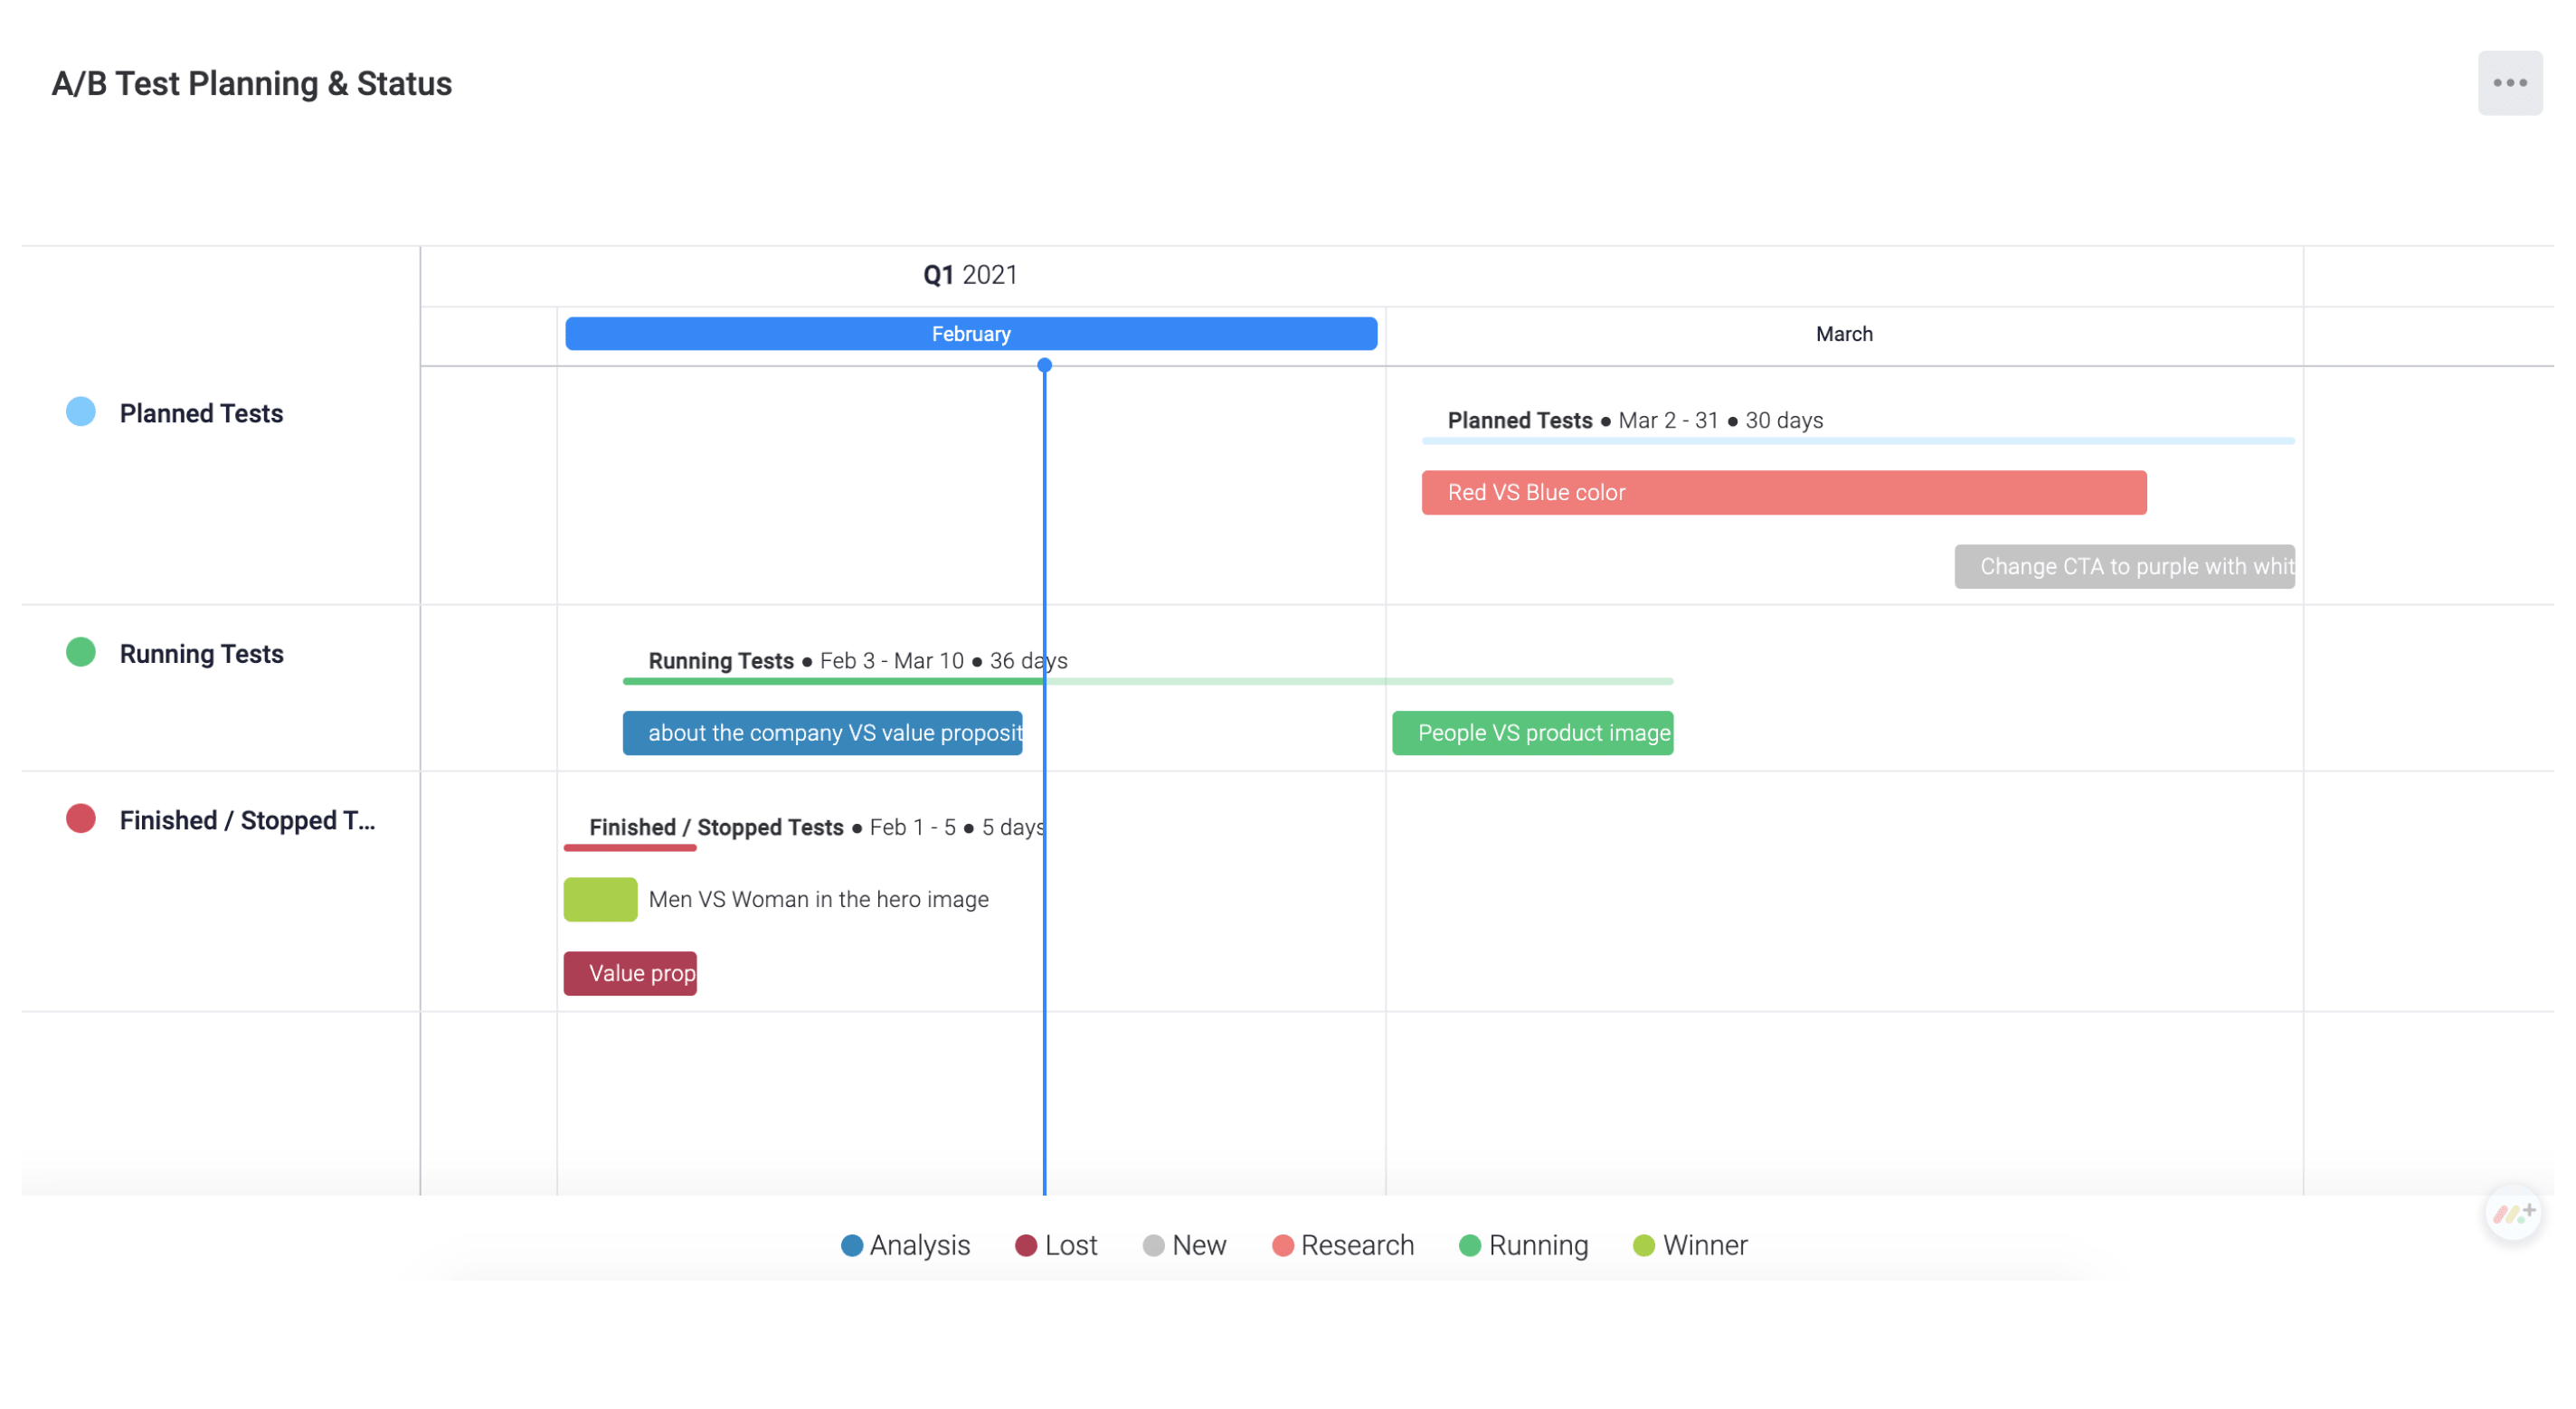 Timeline view to map our scheduled tests